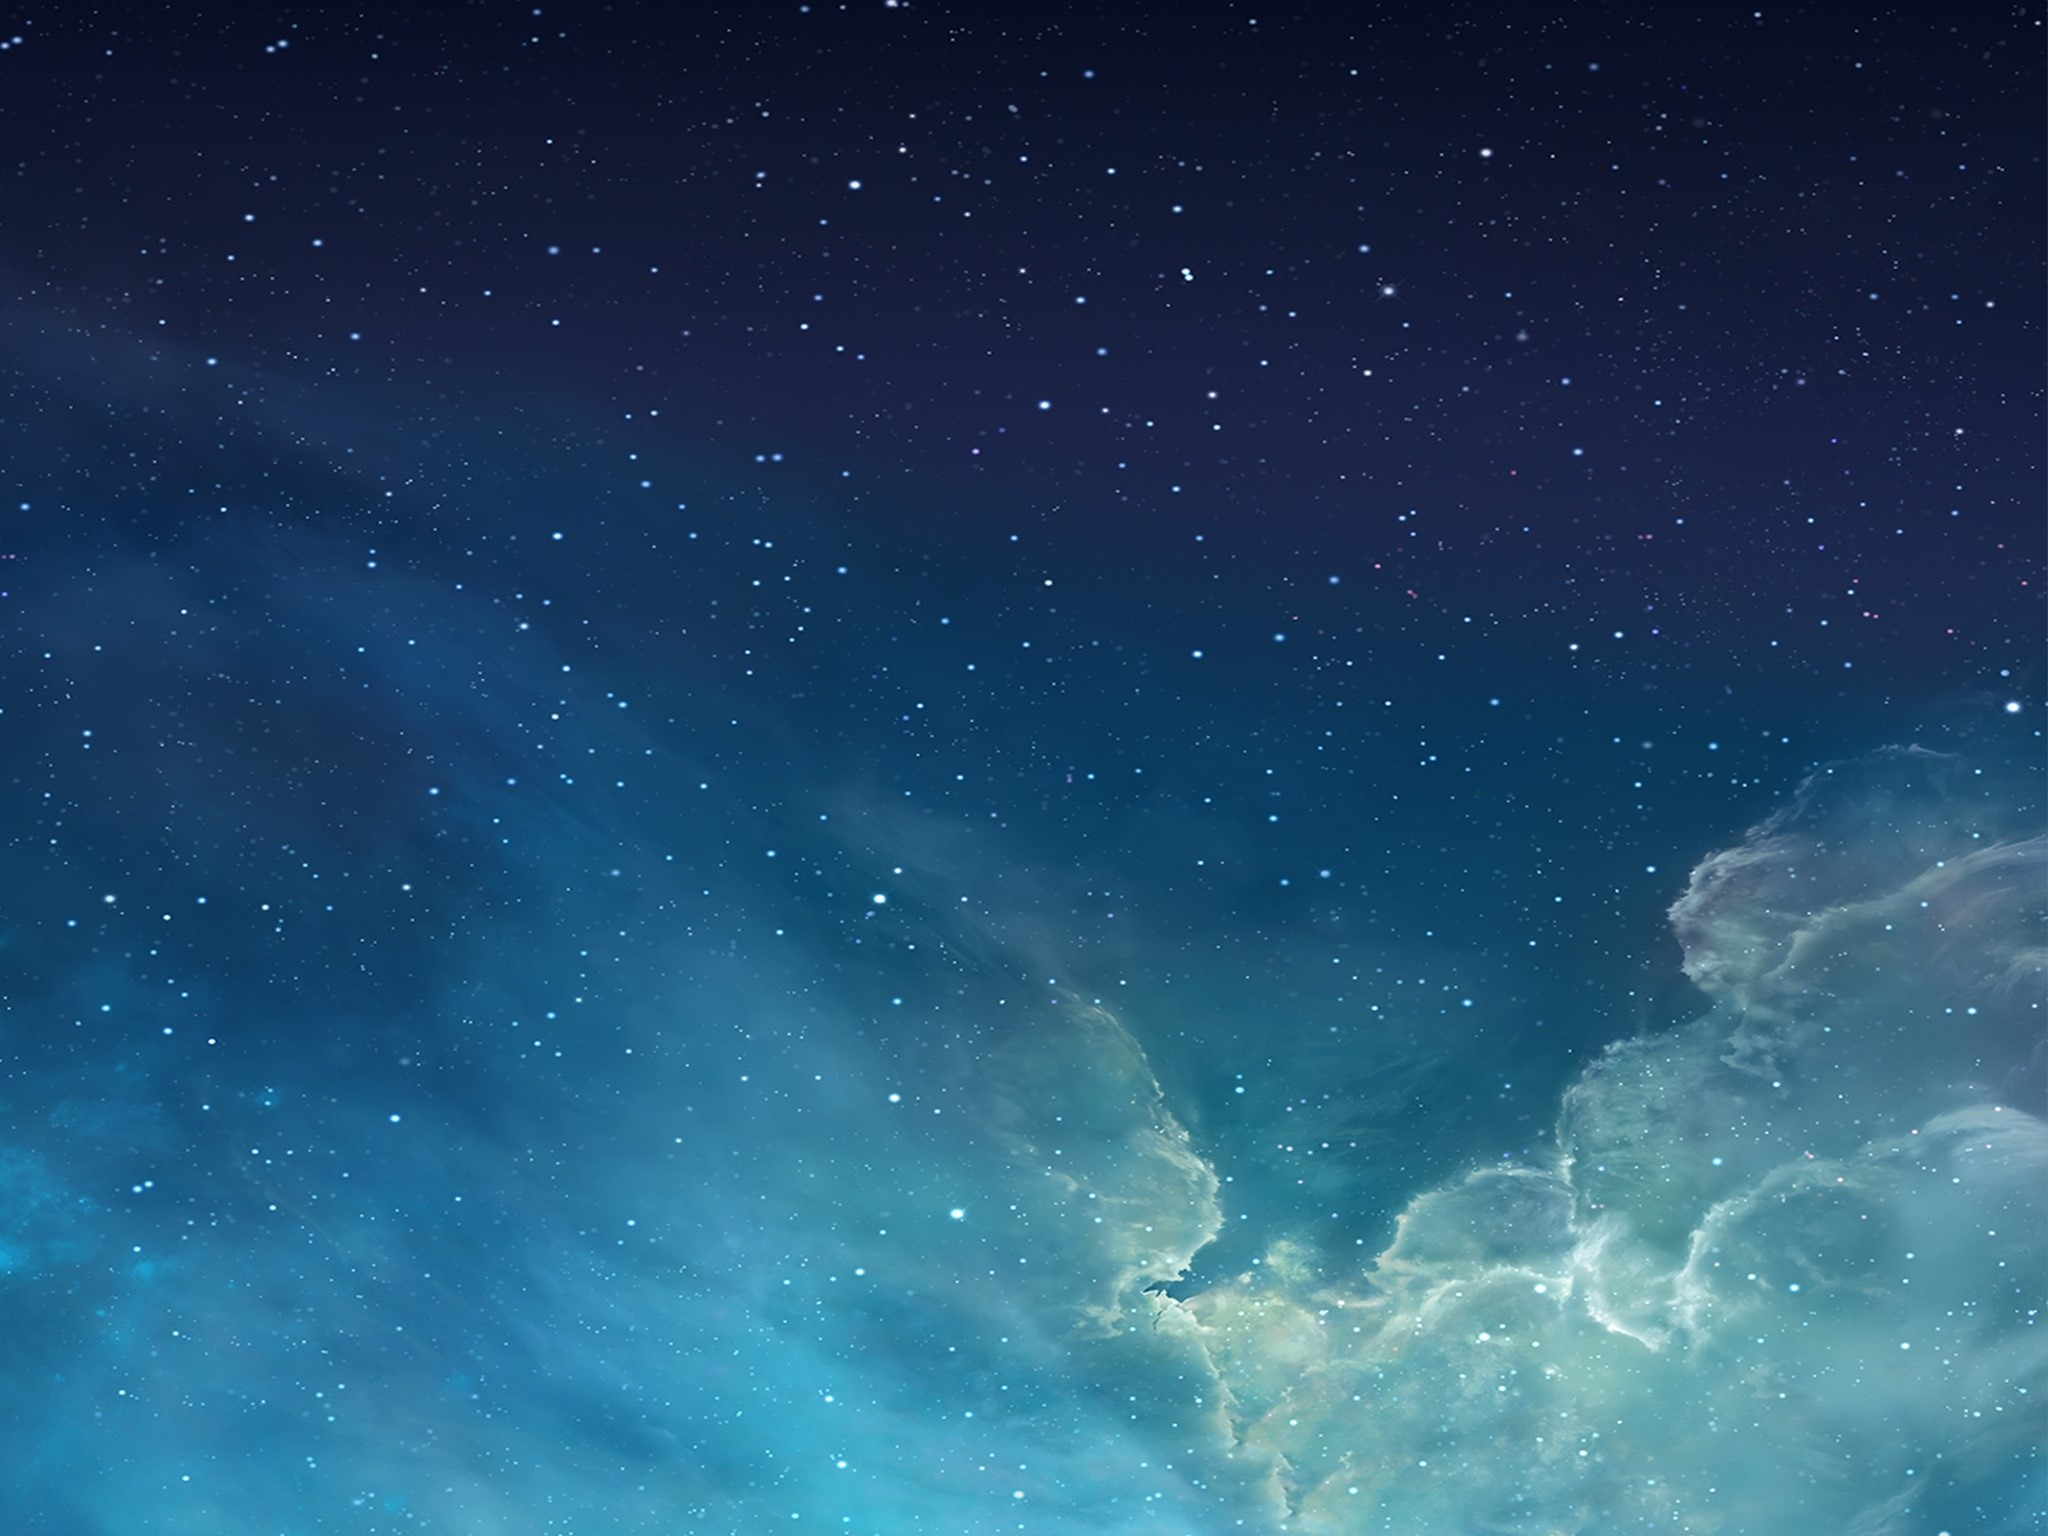 Wallpaper Clouds and stars